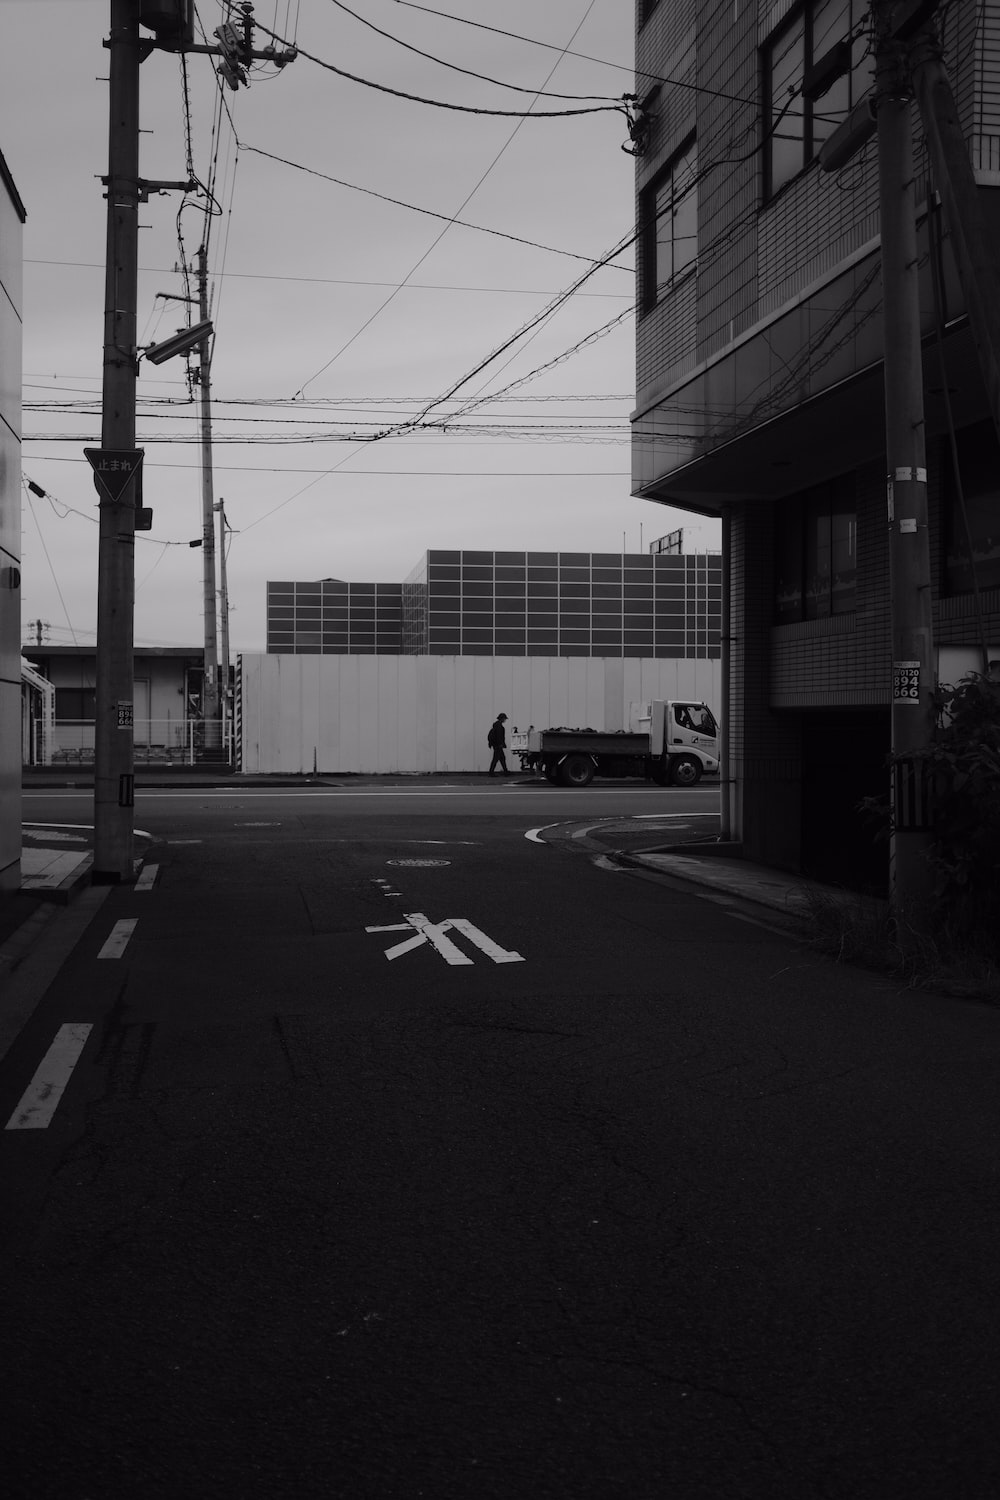 grayscale photo of a road with cars parked on the side